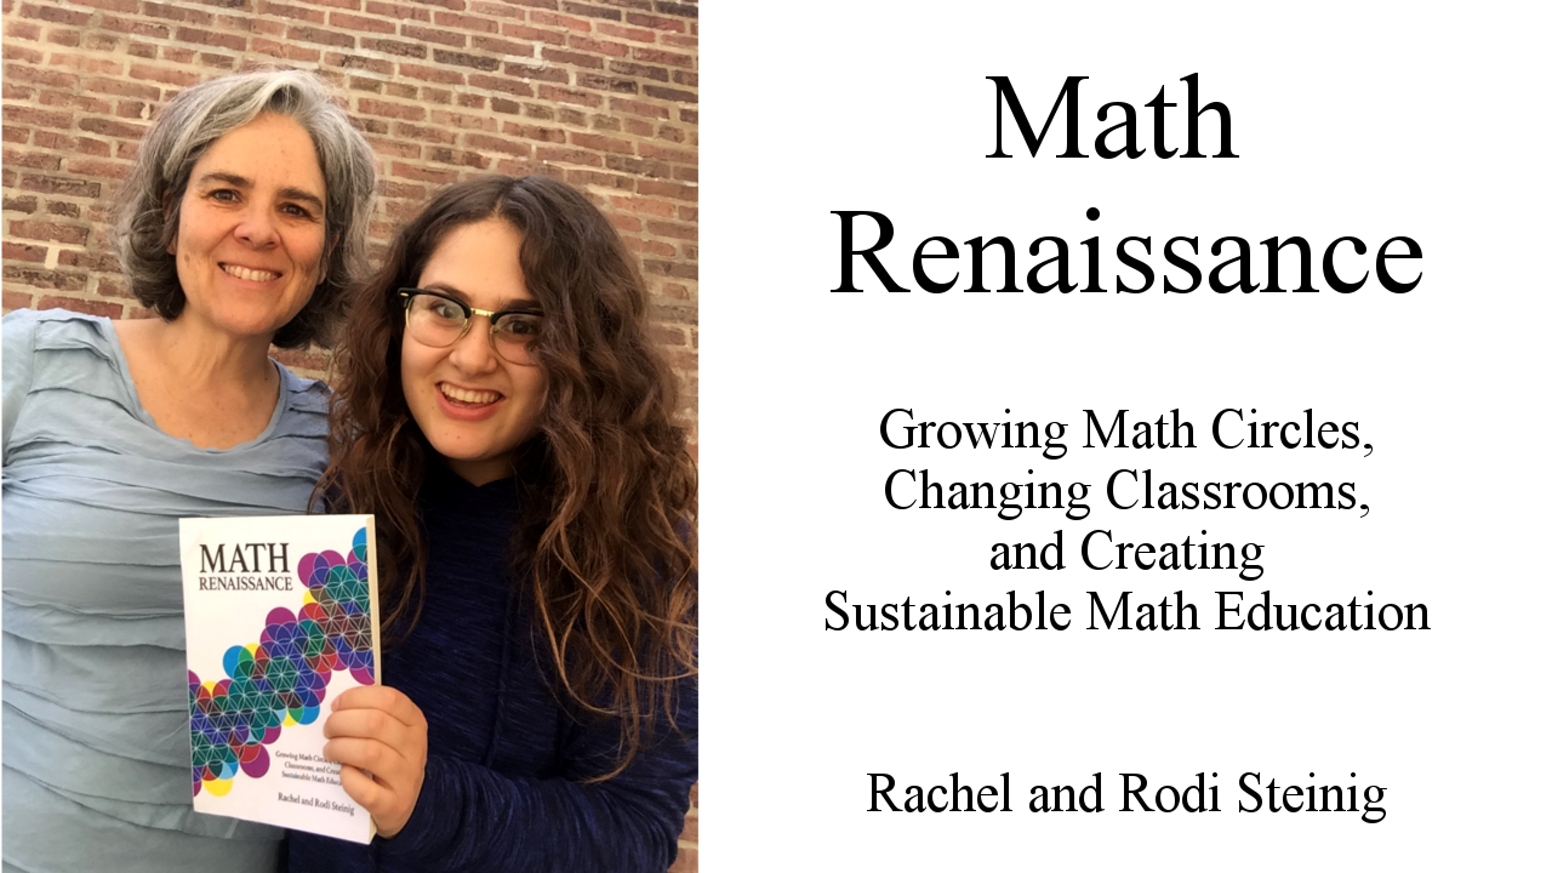 Growing math circles, changing classrooms, and creating sustainable math education. A book by Rachel Steinig and Rodi Steinig.